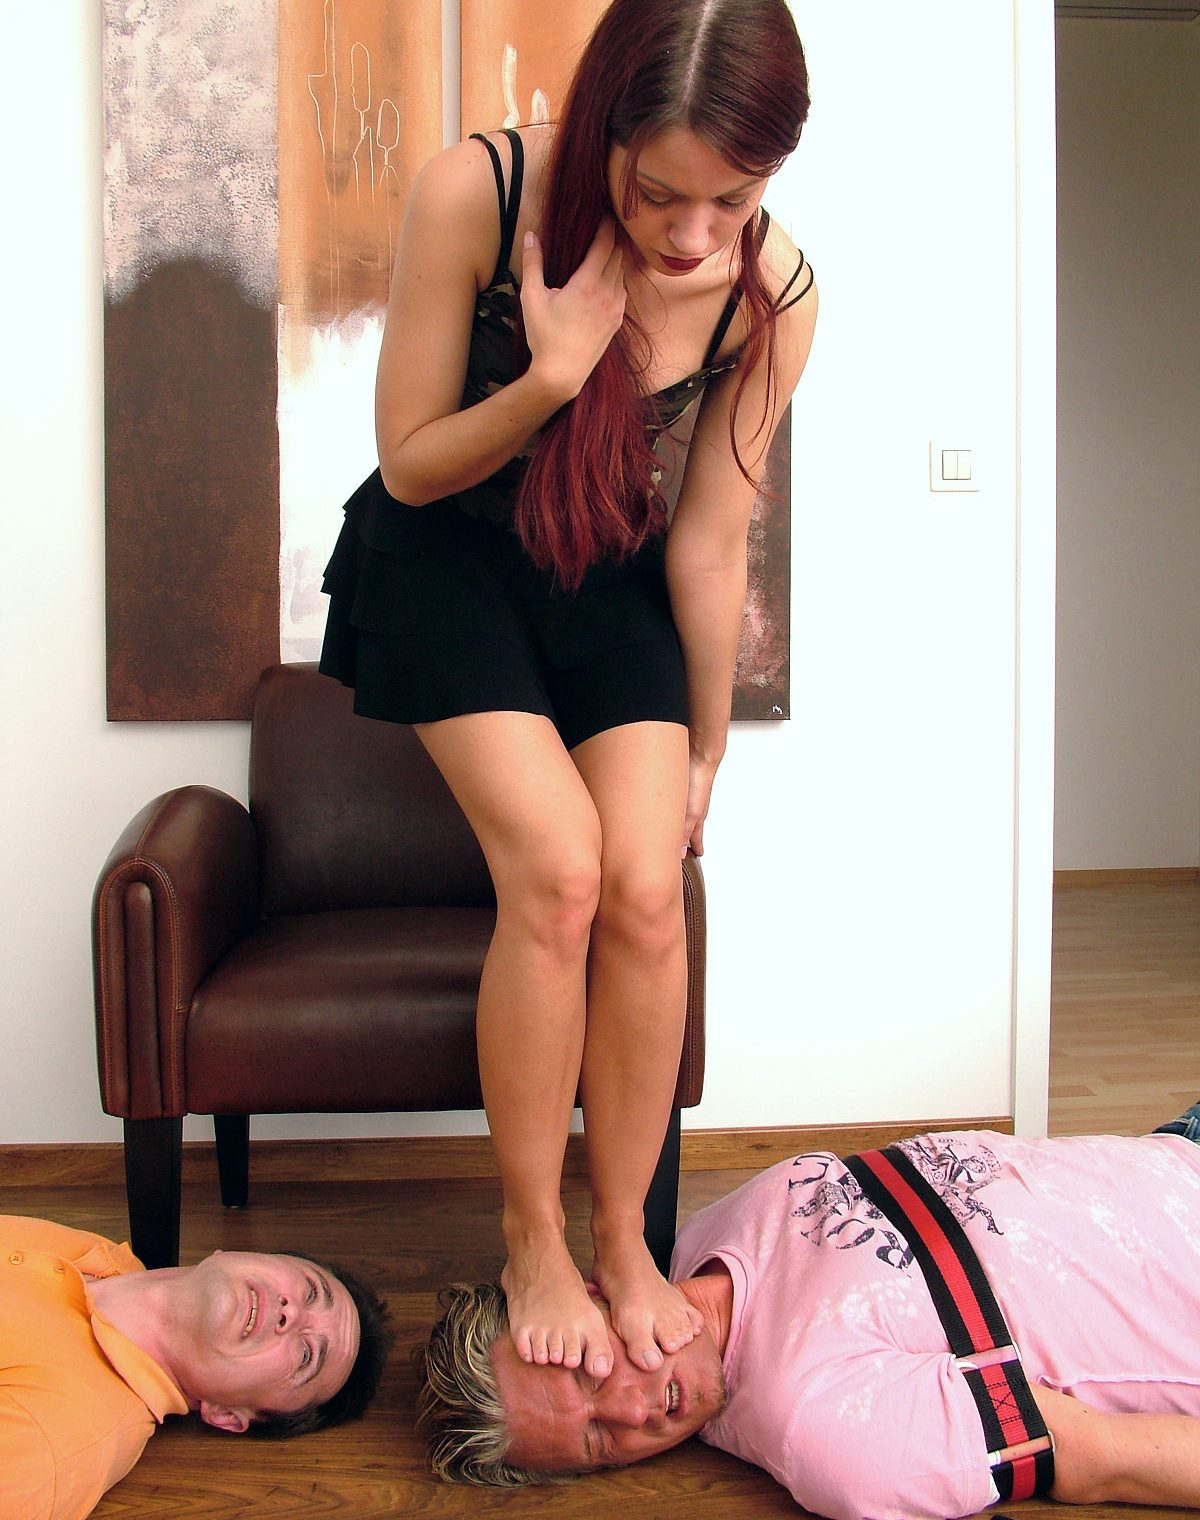 Young Pretty Dominant Girl Full Weight Head Trampling Femdom Bare Feet